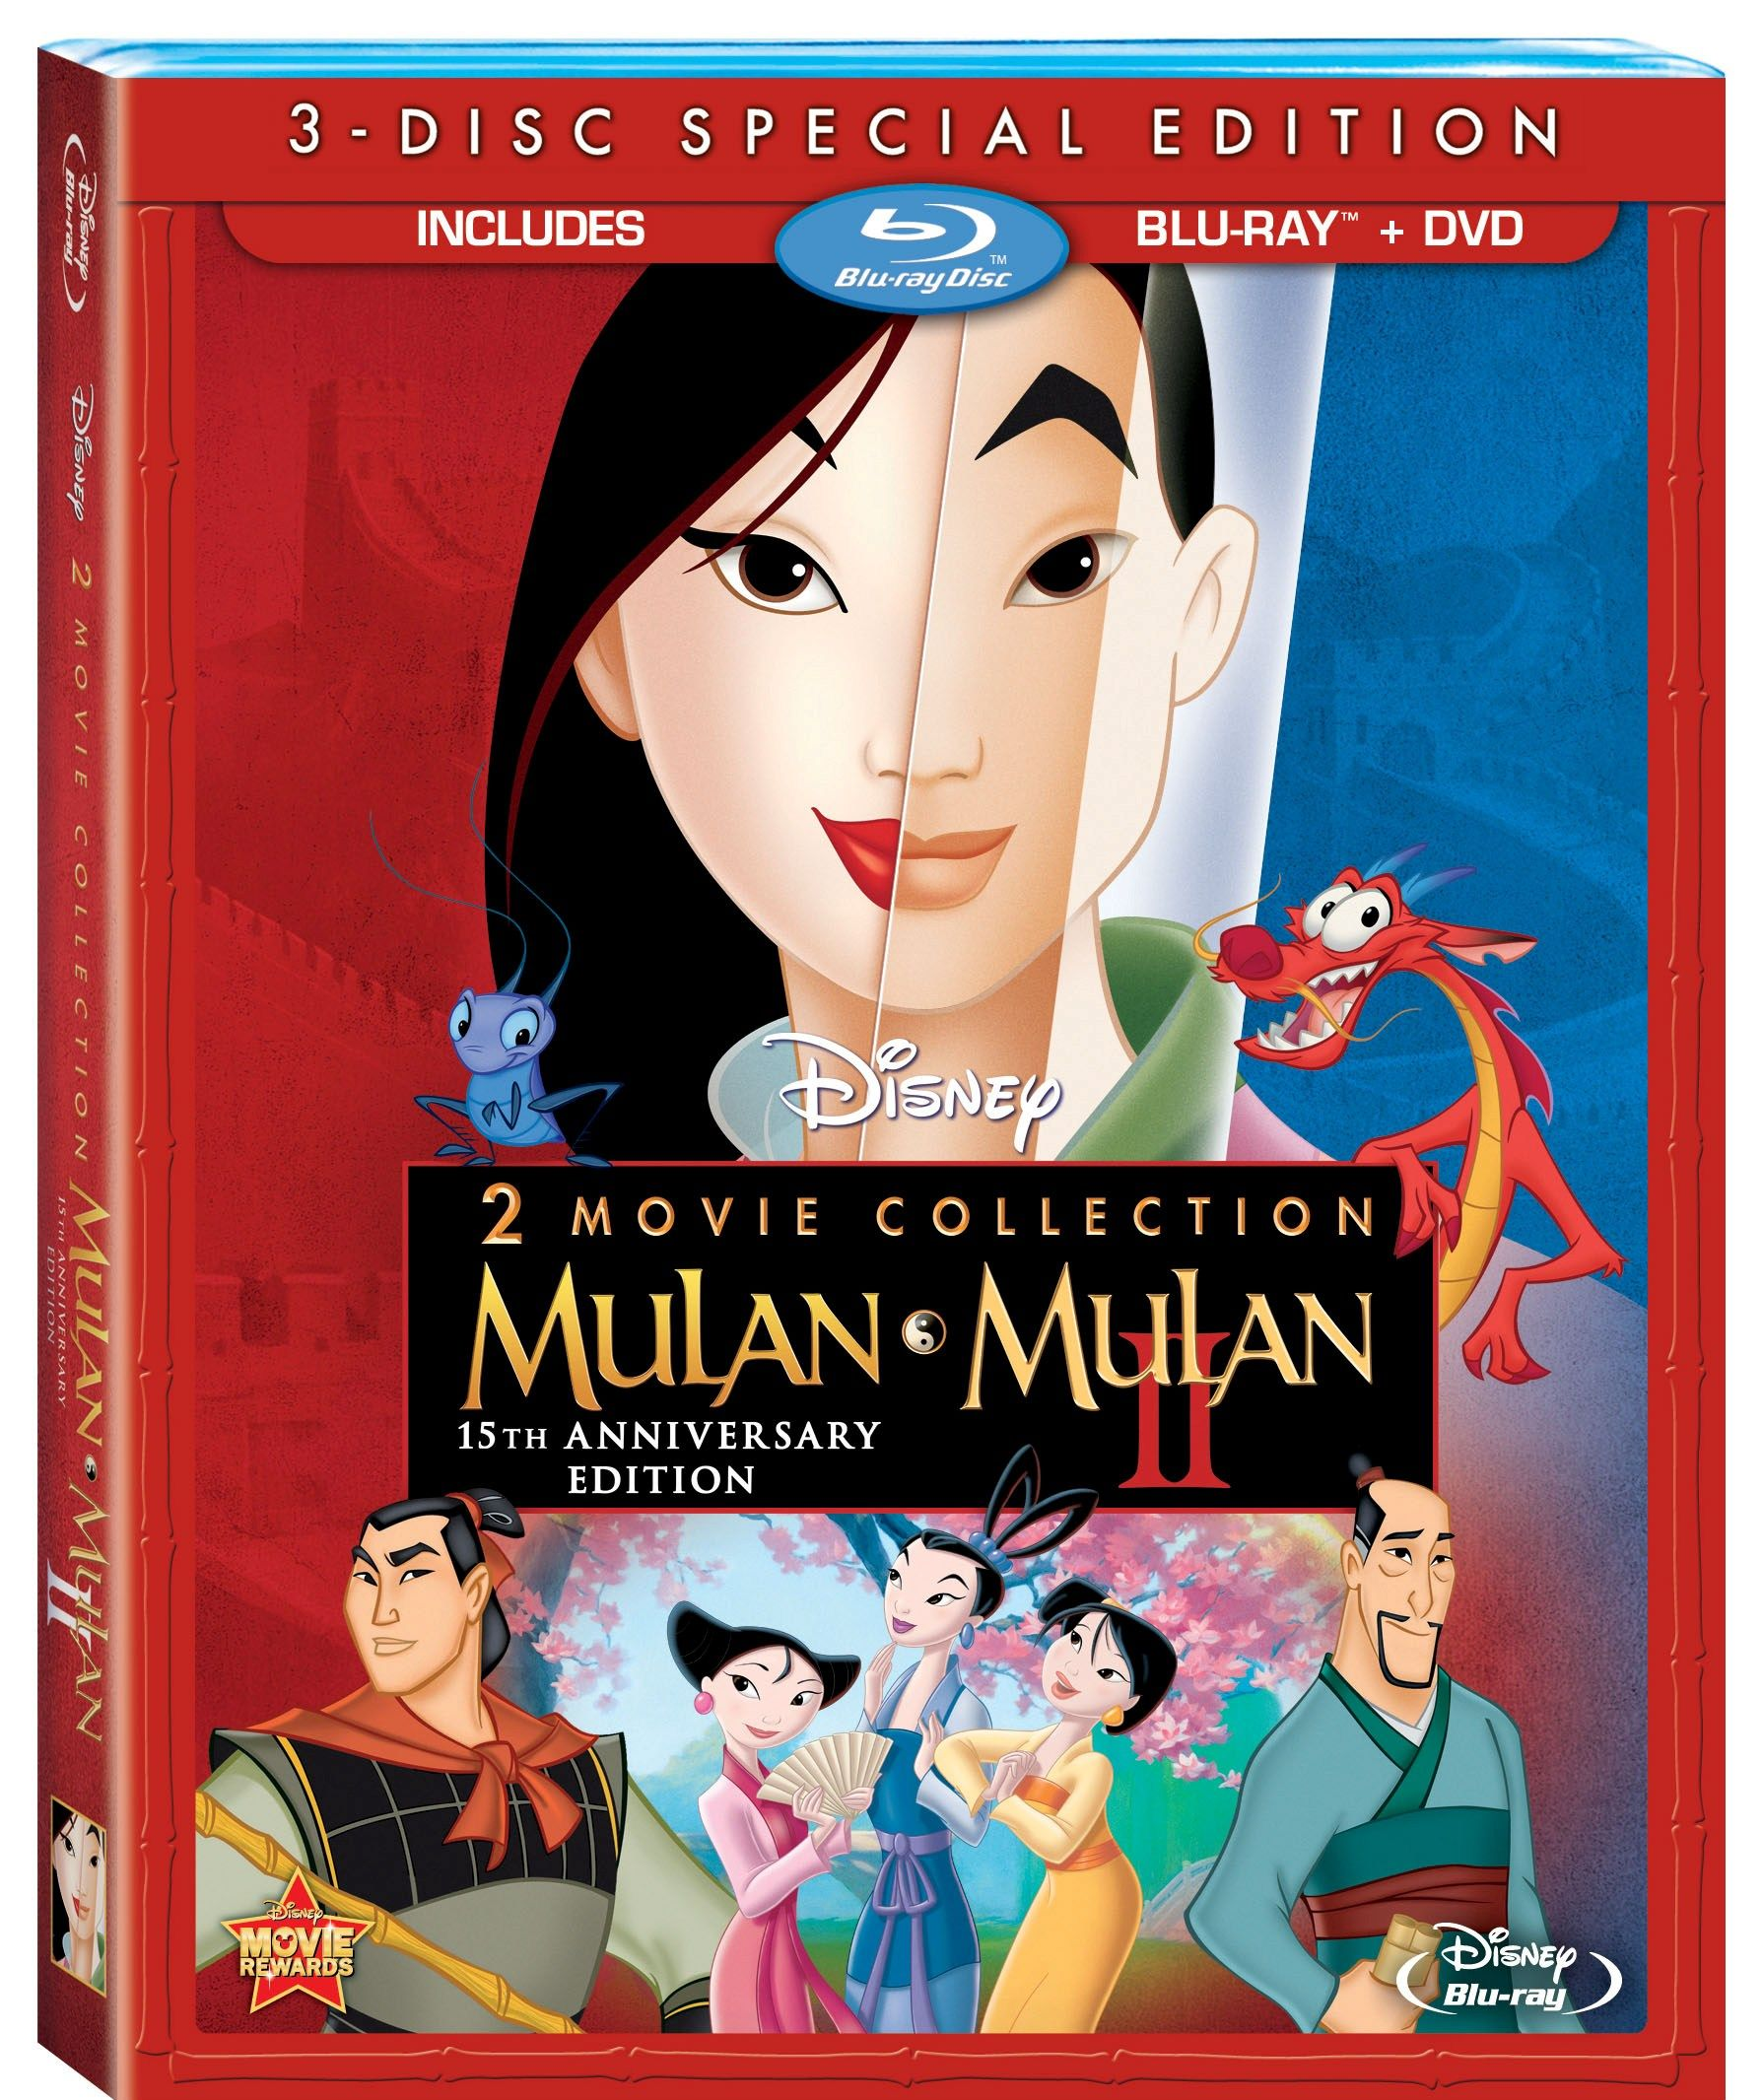 WHO FRAMED ROGER RABBIT, MULAN, and More Debut on Blu-ray March 12 ...